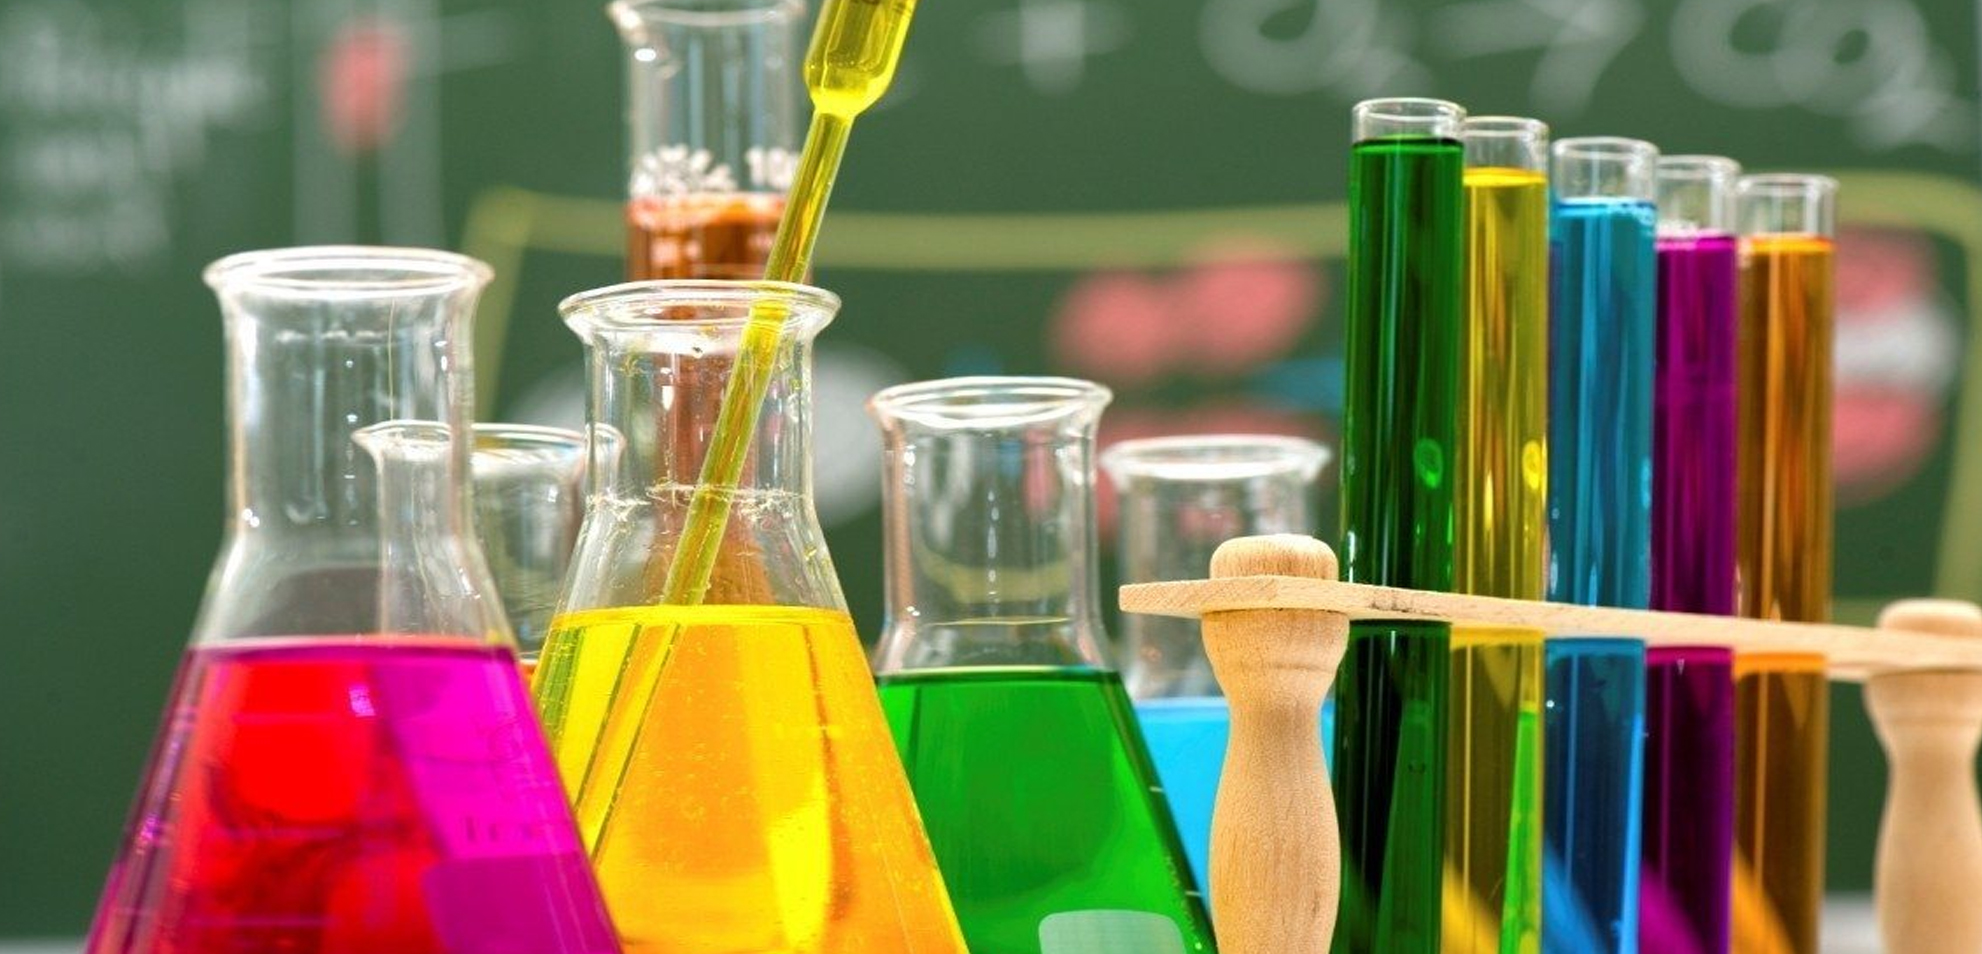 Adarsh Chemicals  Chemicals and Solvents,Carbon Tetrachloride